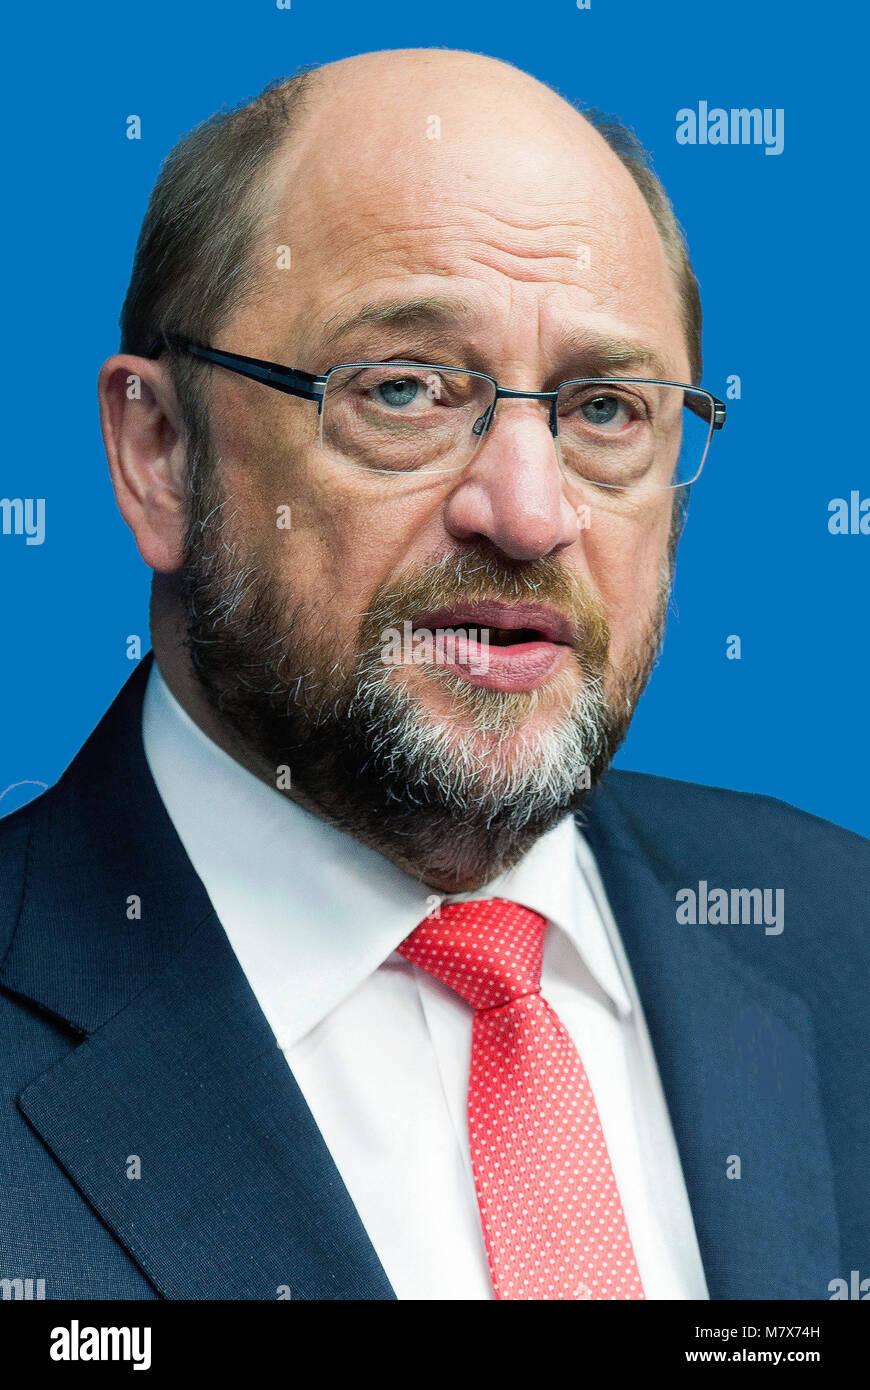 Martin Schulz - *20.12.1955: German politician of the Social Democratic Party, 2012 to 2017 President of the European - Stock Image